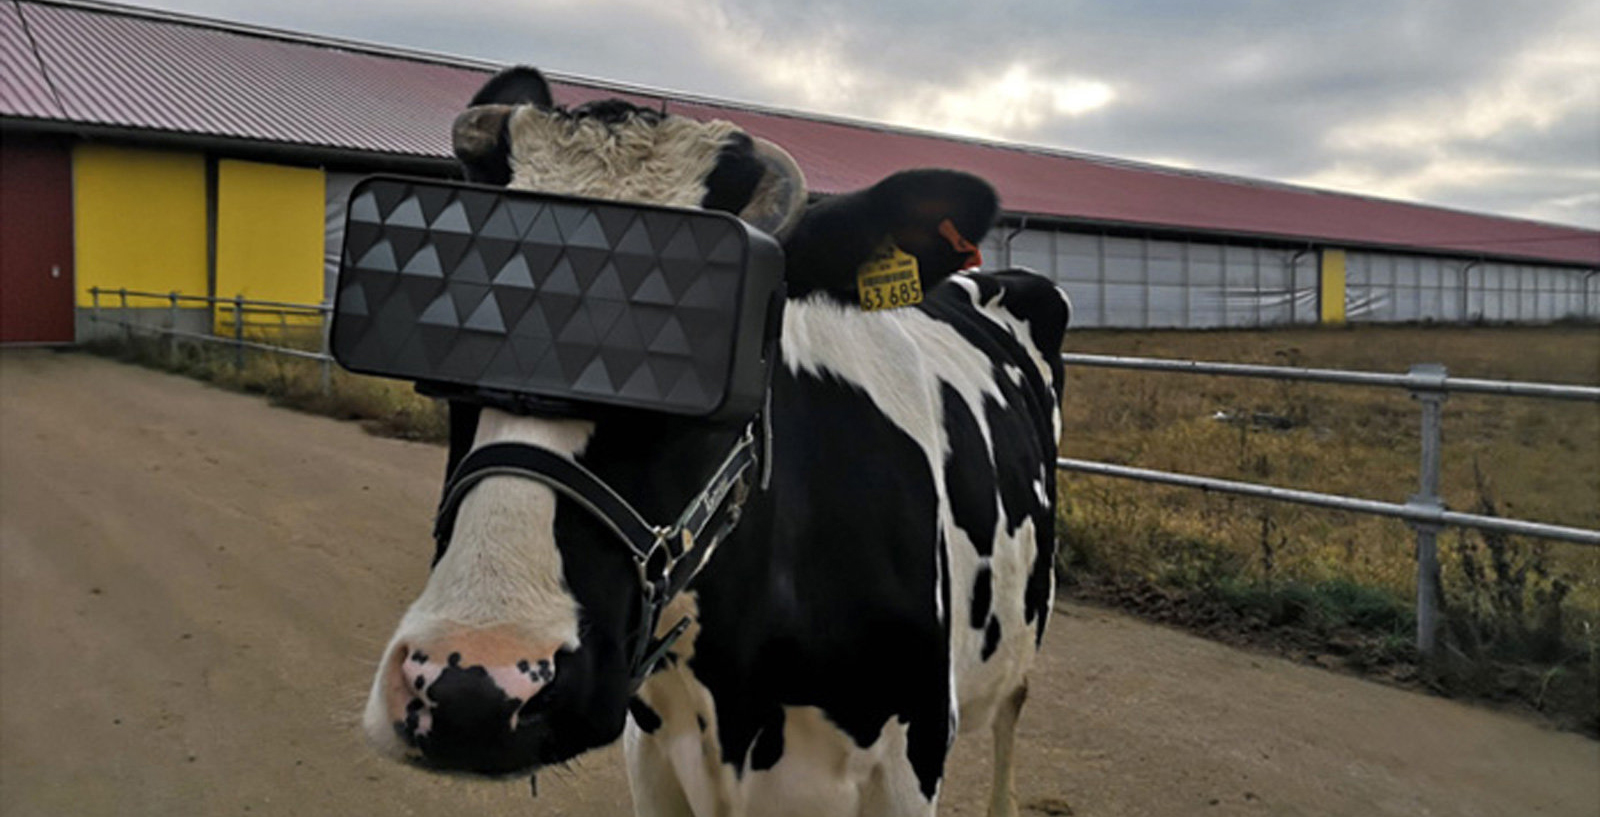 Cow VR headset